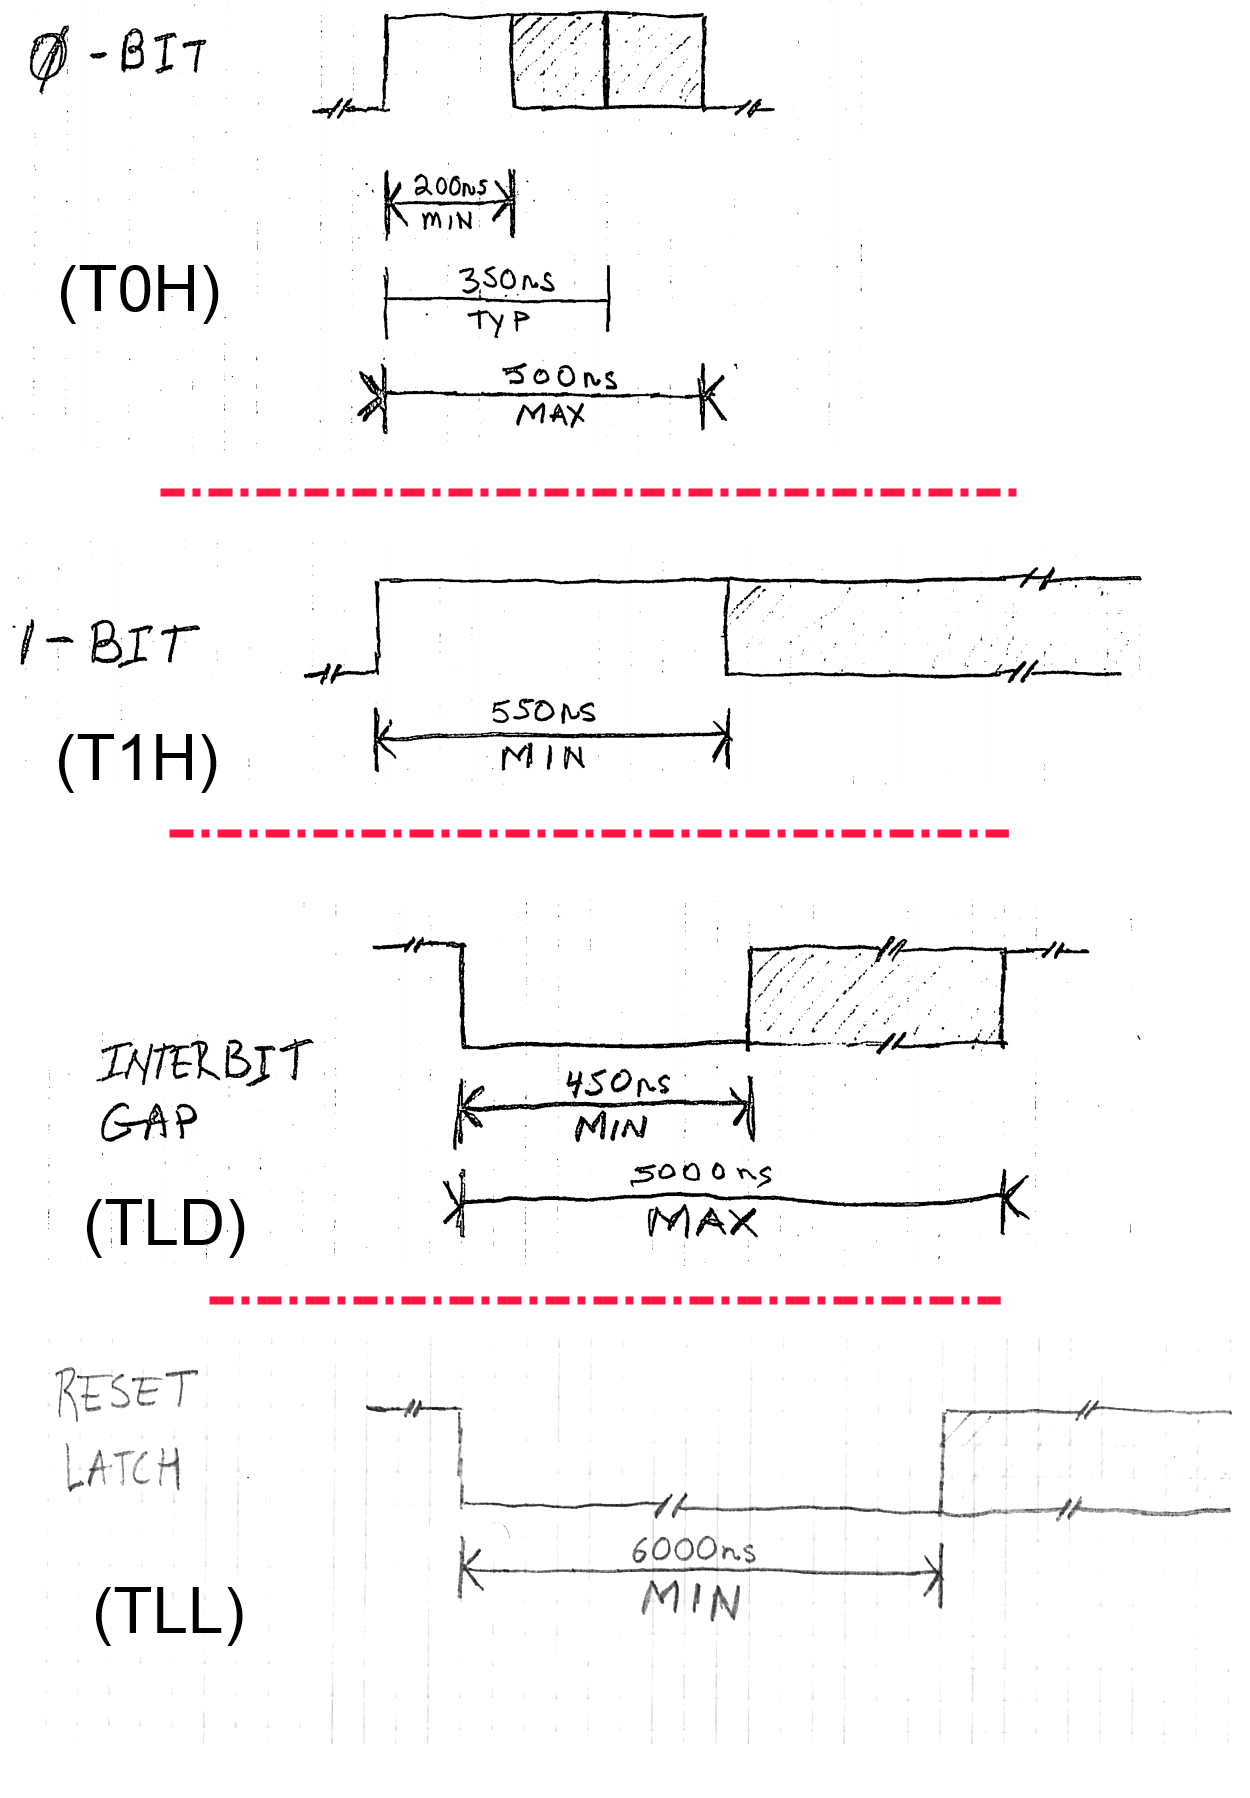 uart timing diagram 3 circle venn worksheet neopixels revealed how to not need generate